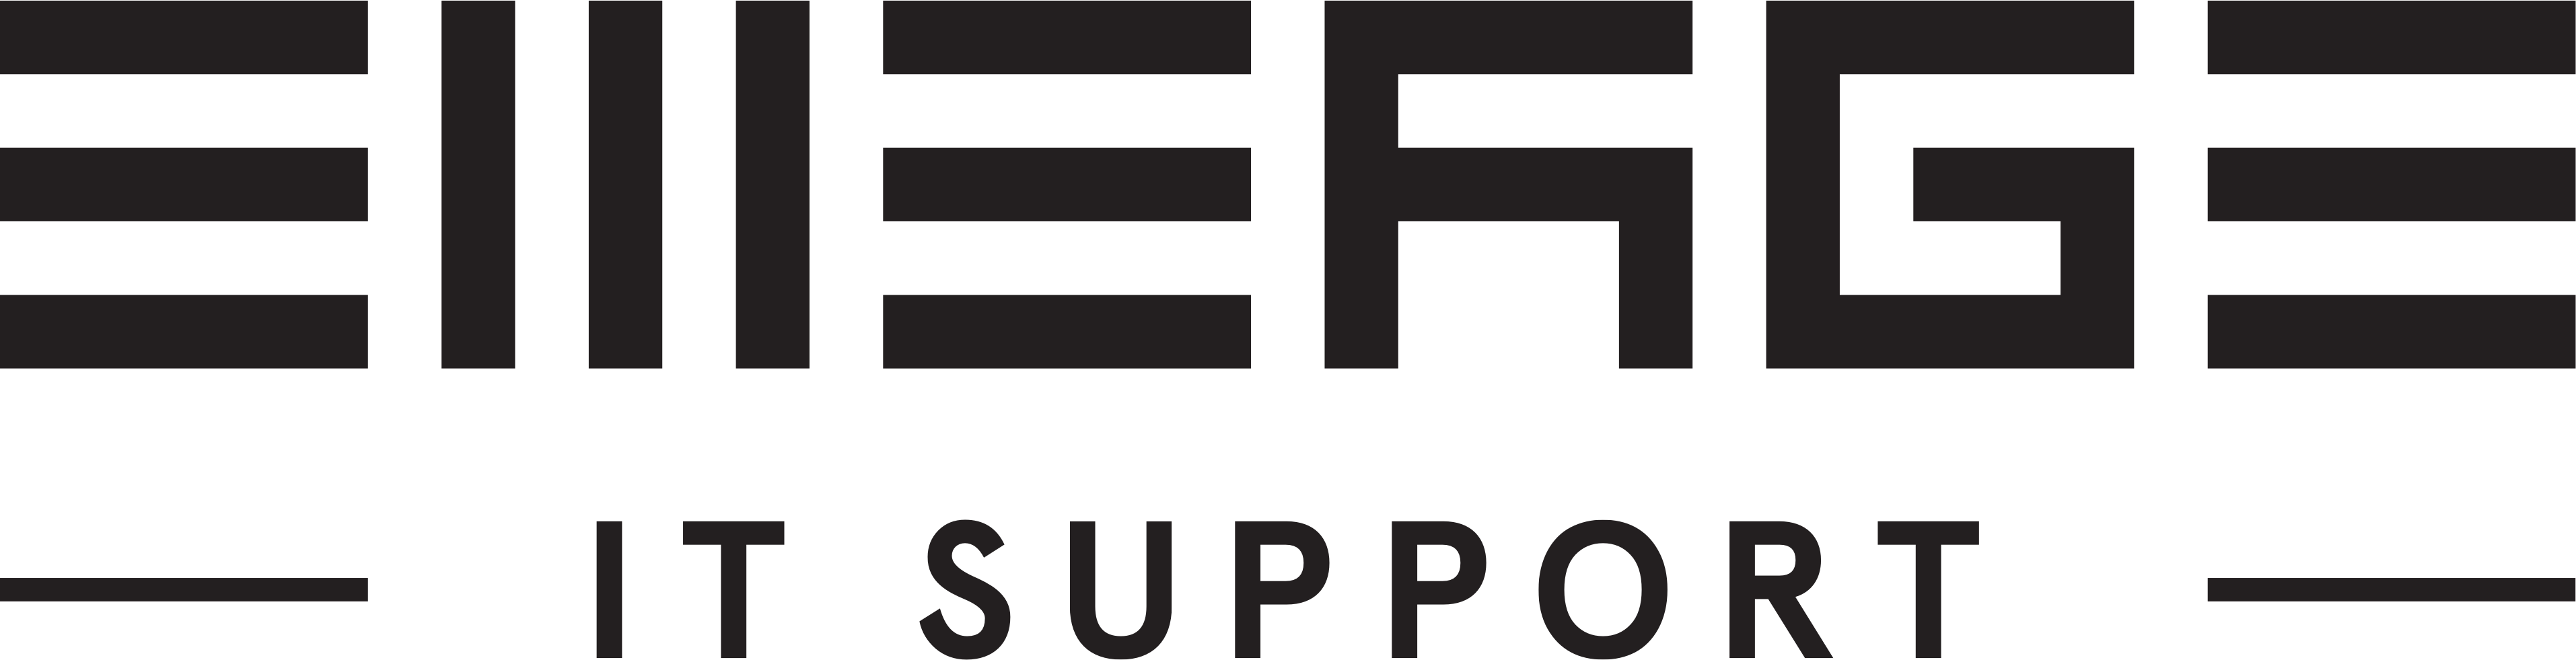 Emerge IT Support